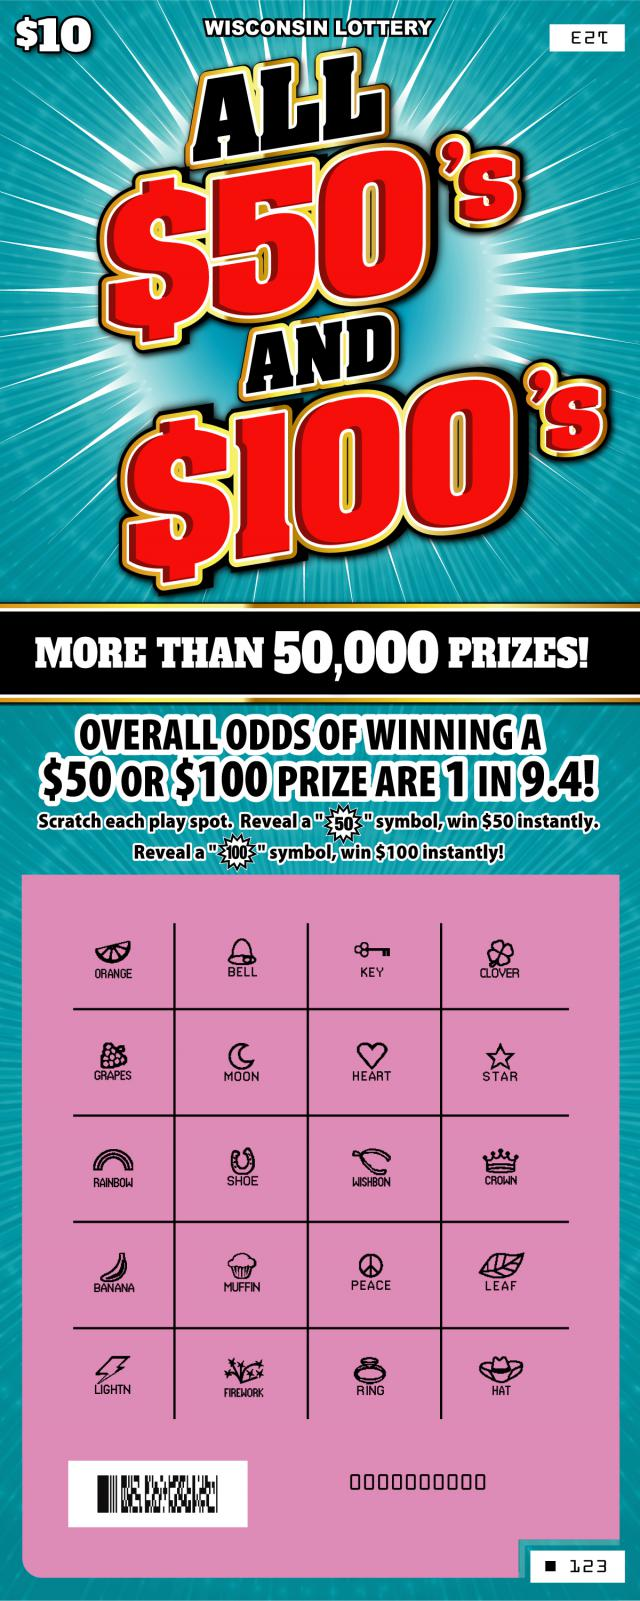 All $50's and $100's instant scratch ticket